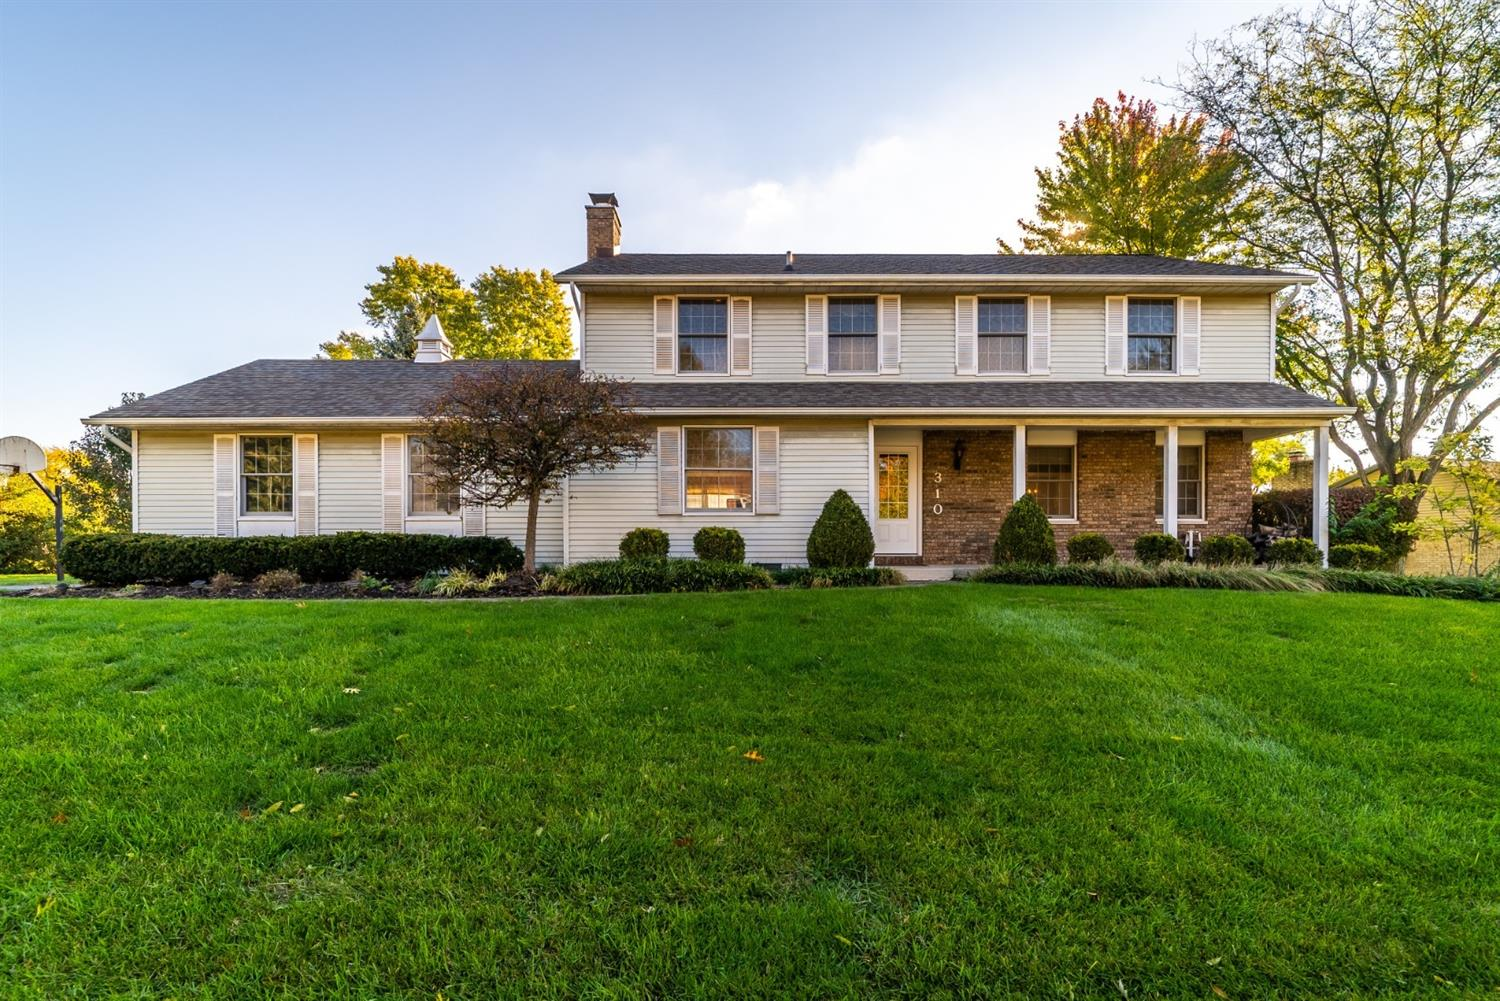 310 Dunnigan Dr Montgomery Co., OH